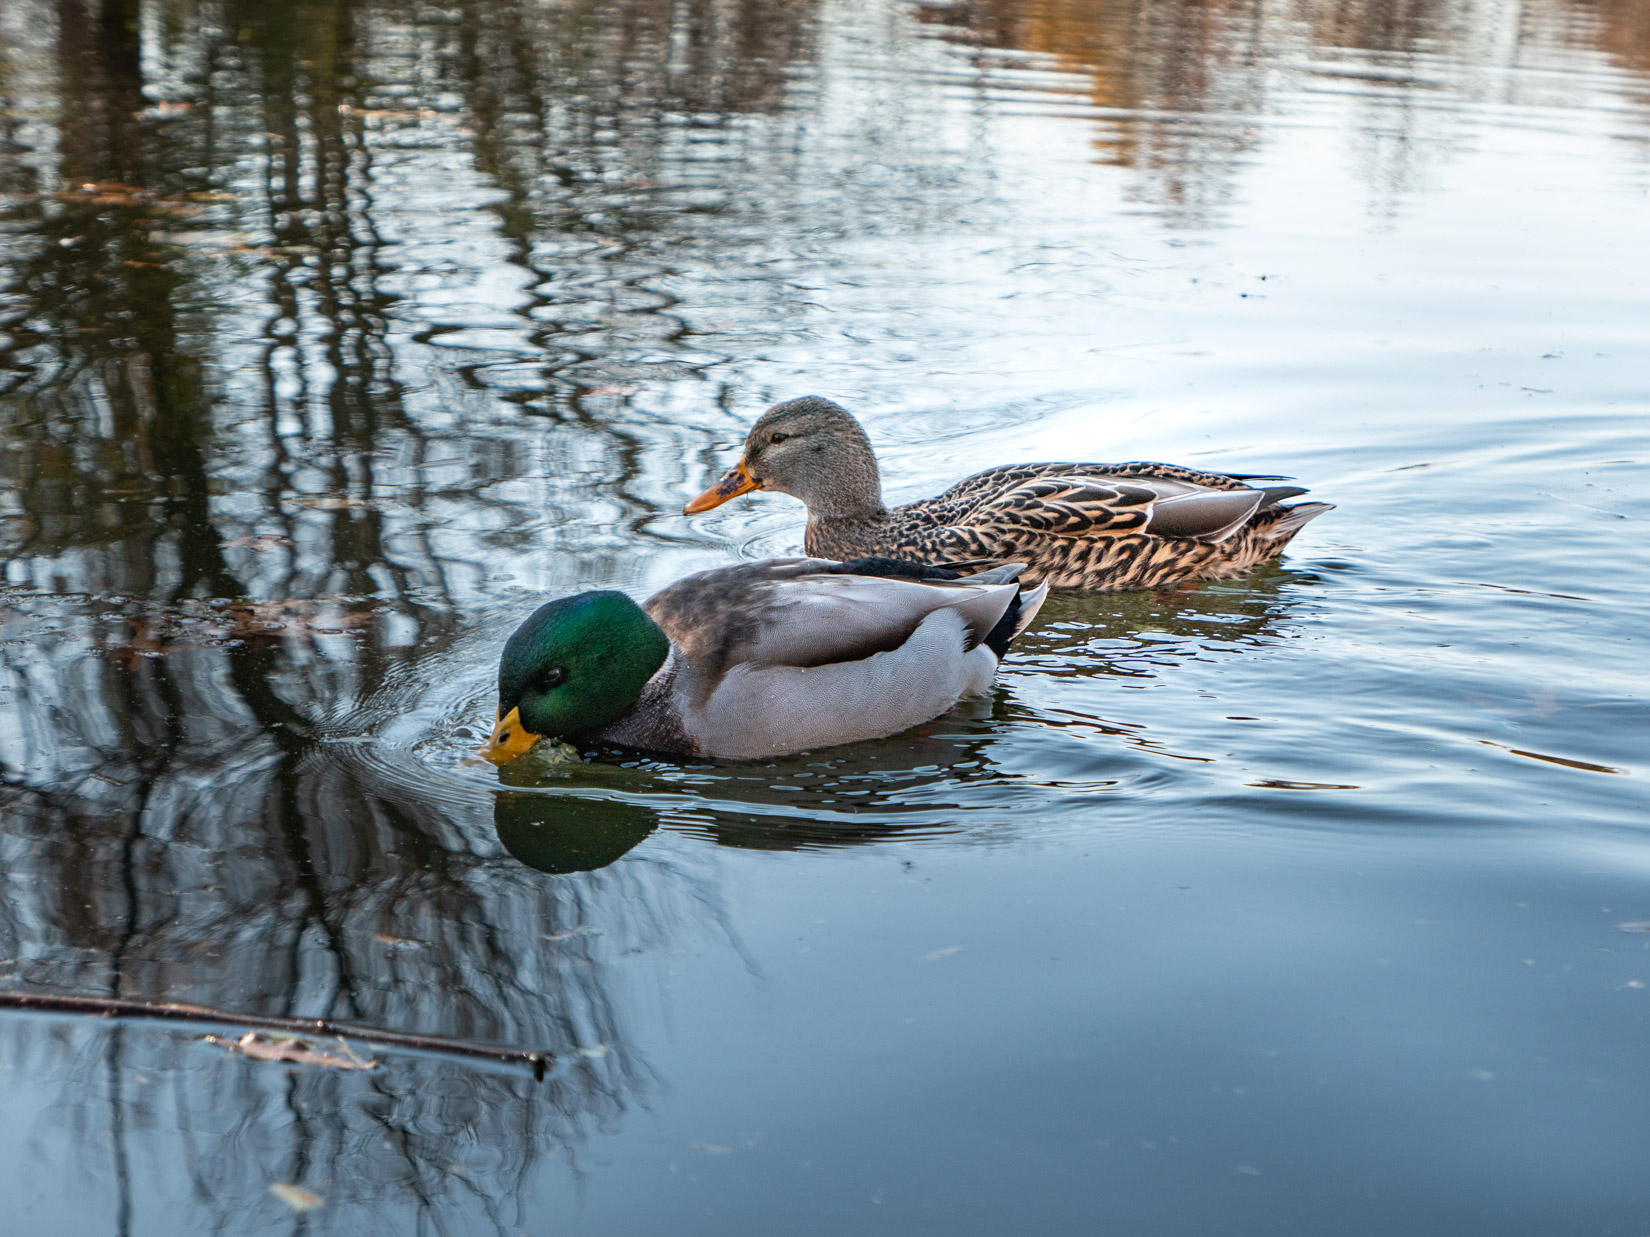 Ducks in Water